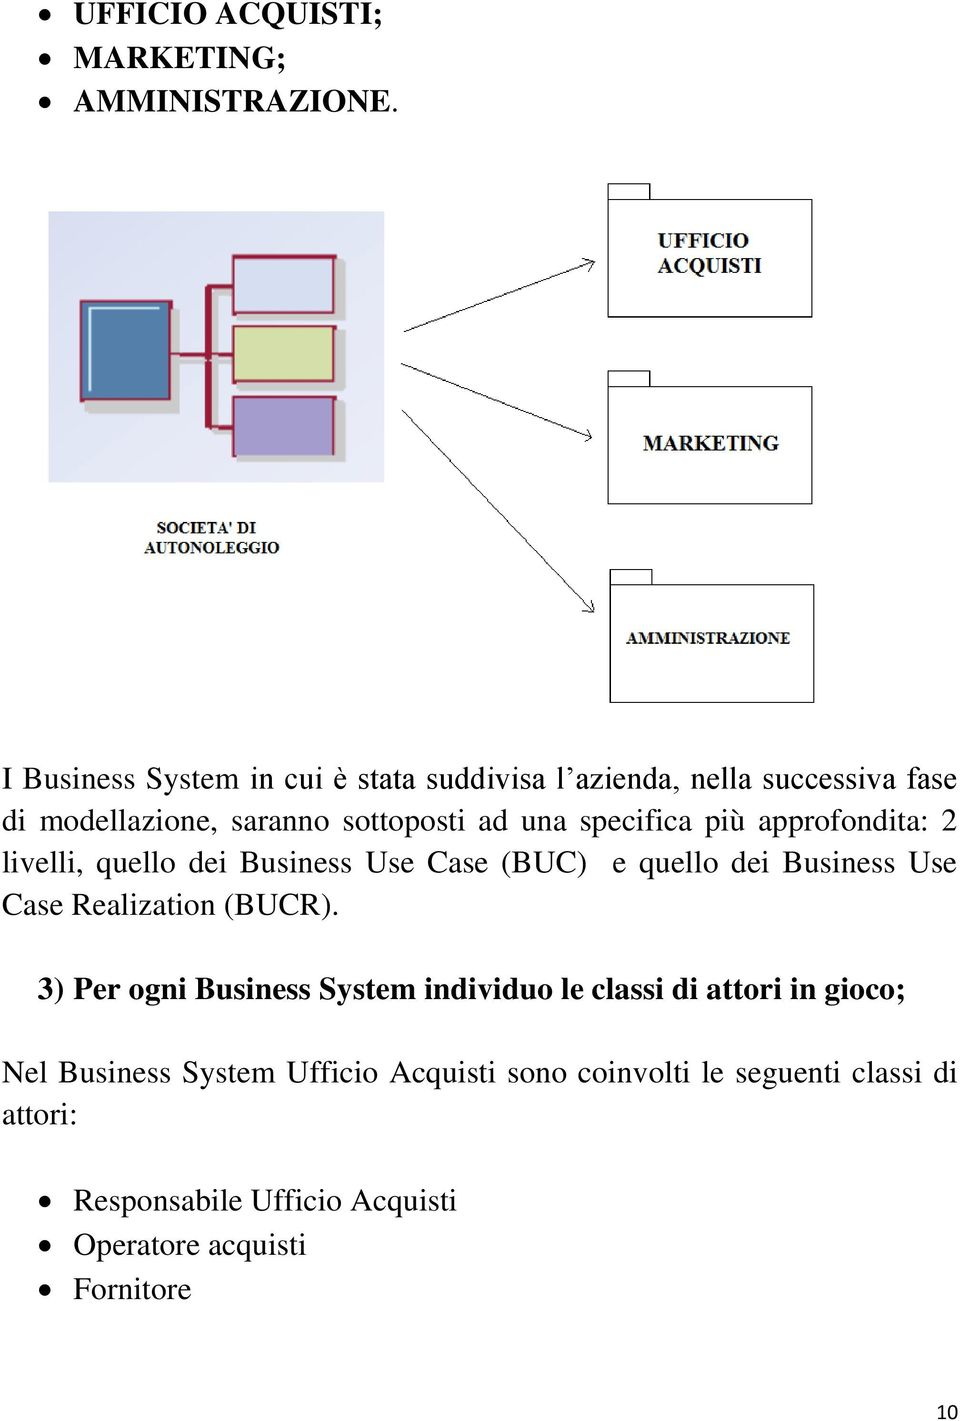 specifica più approfondita: 2 livelli, quello dei Business Use Case (BUC) e quello dei Business Use Case Realization (BUCR).